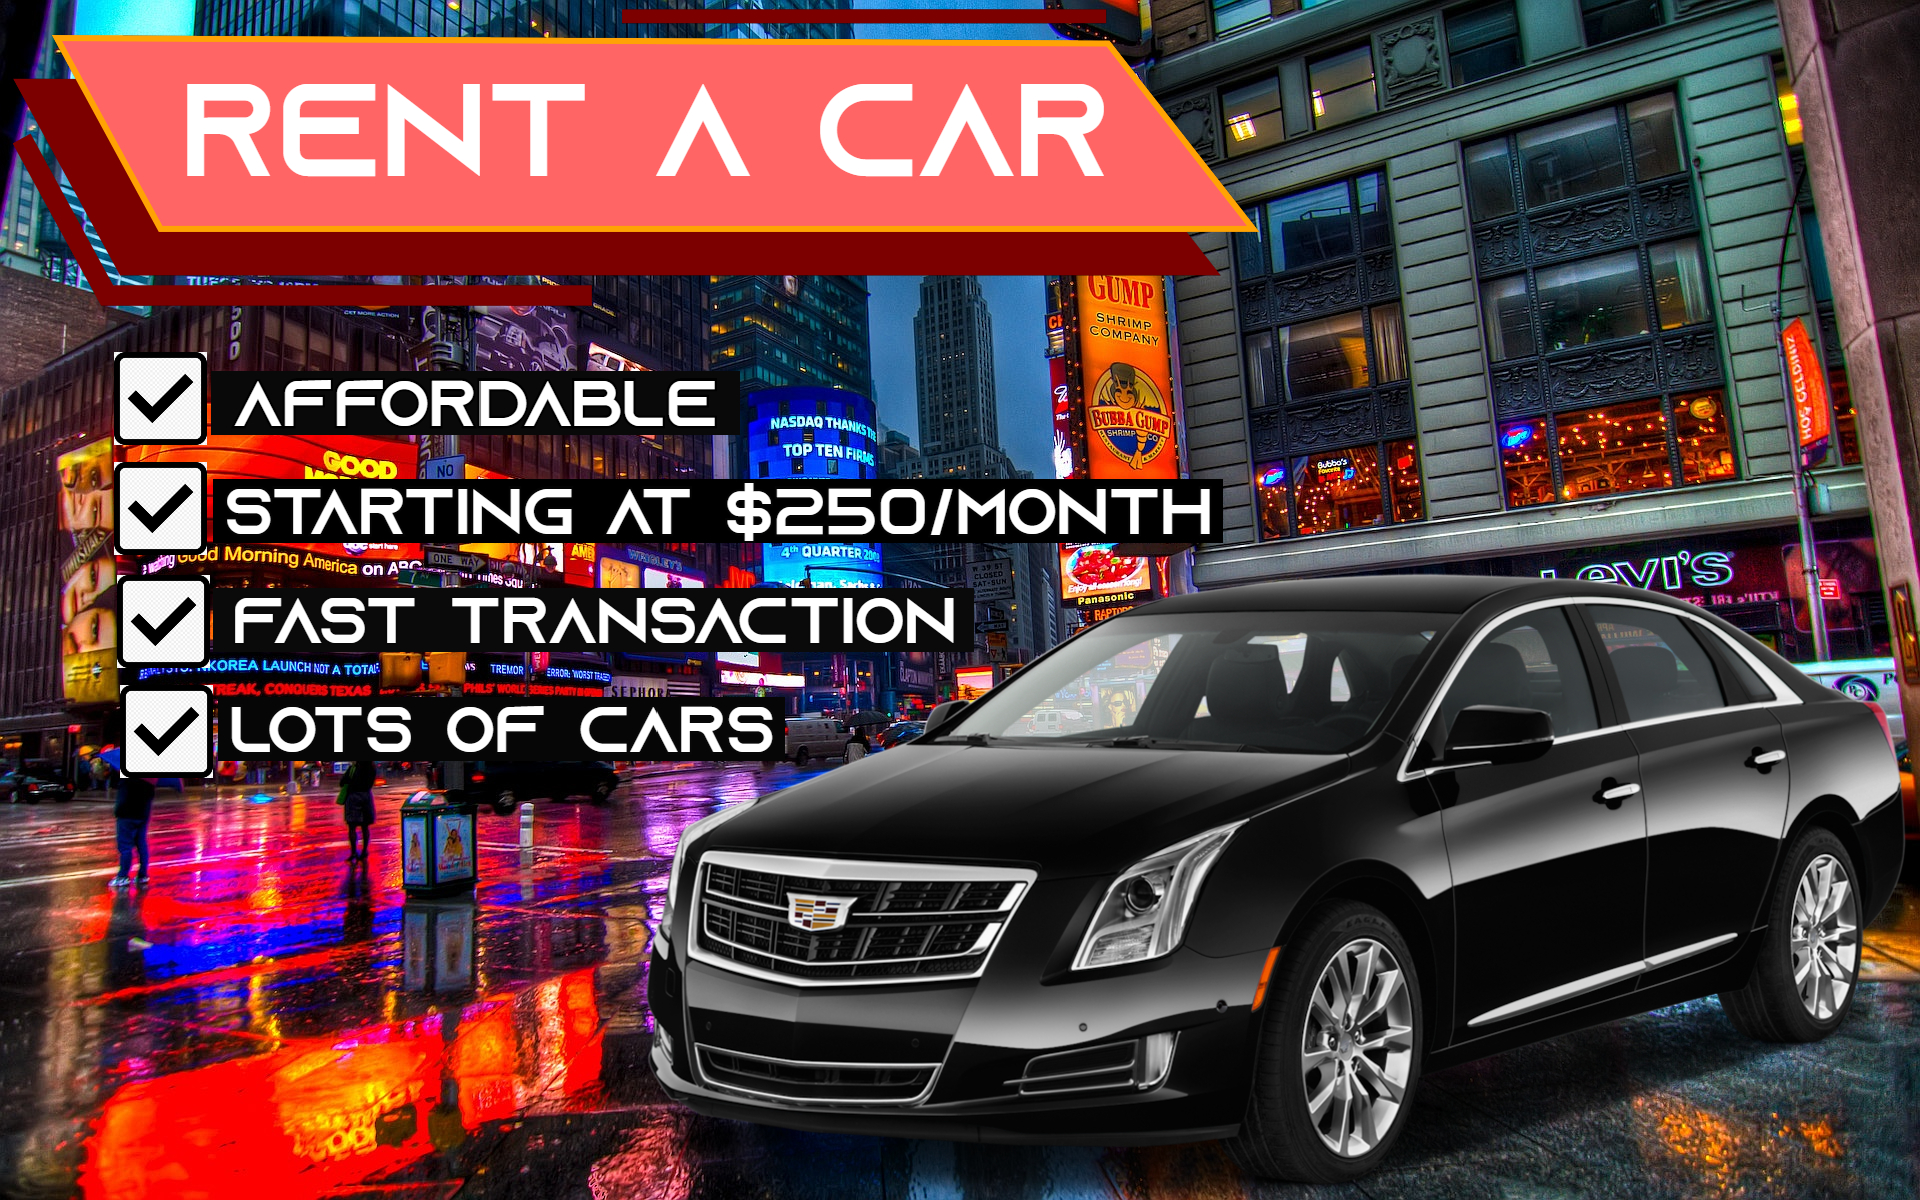 TLC & non-TLC CAR RENTALS!